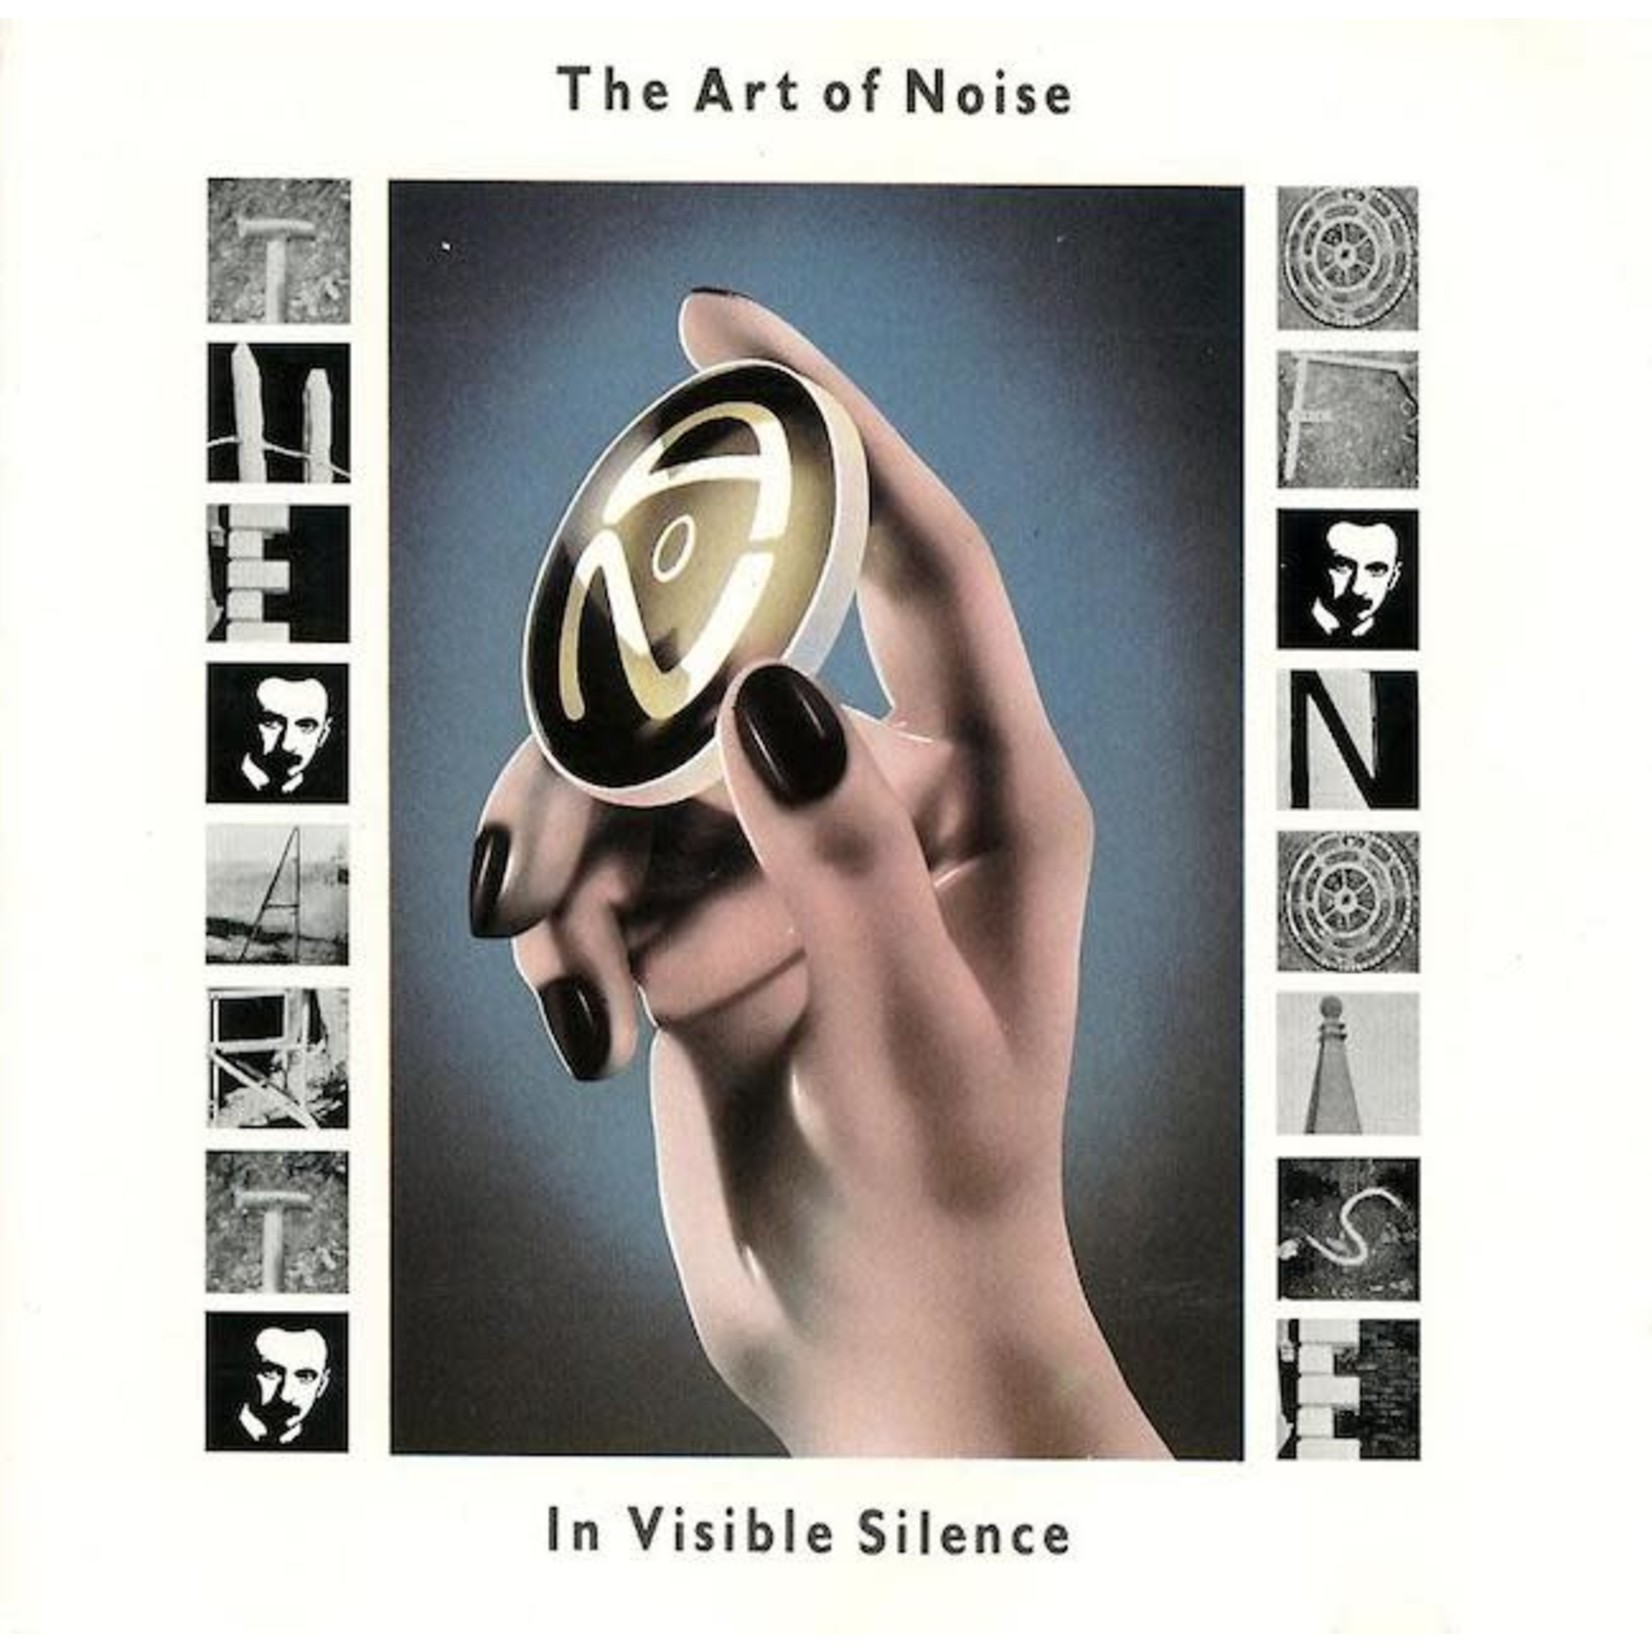 [Vintage] Art of Noise: In Visible Silence